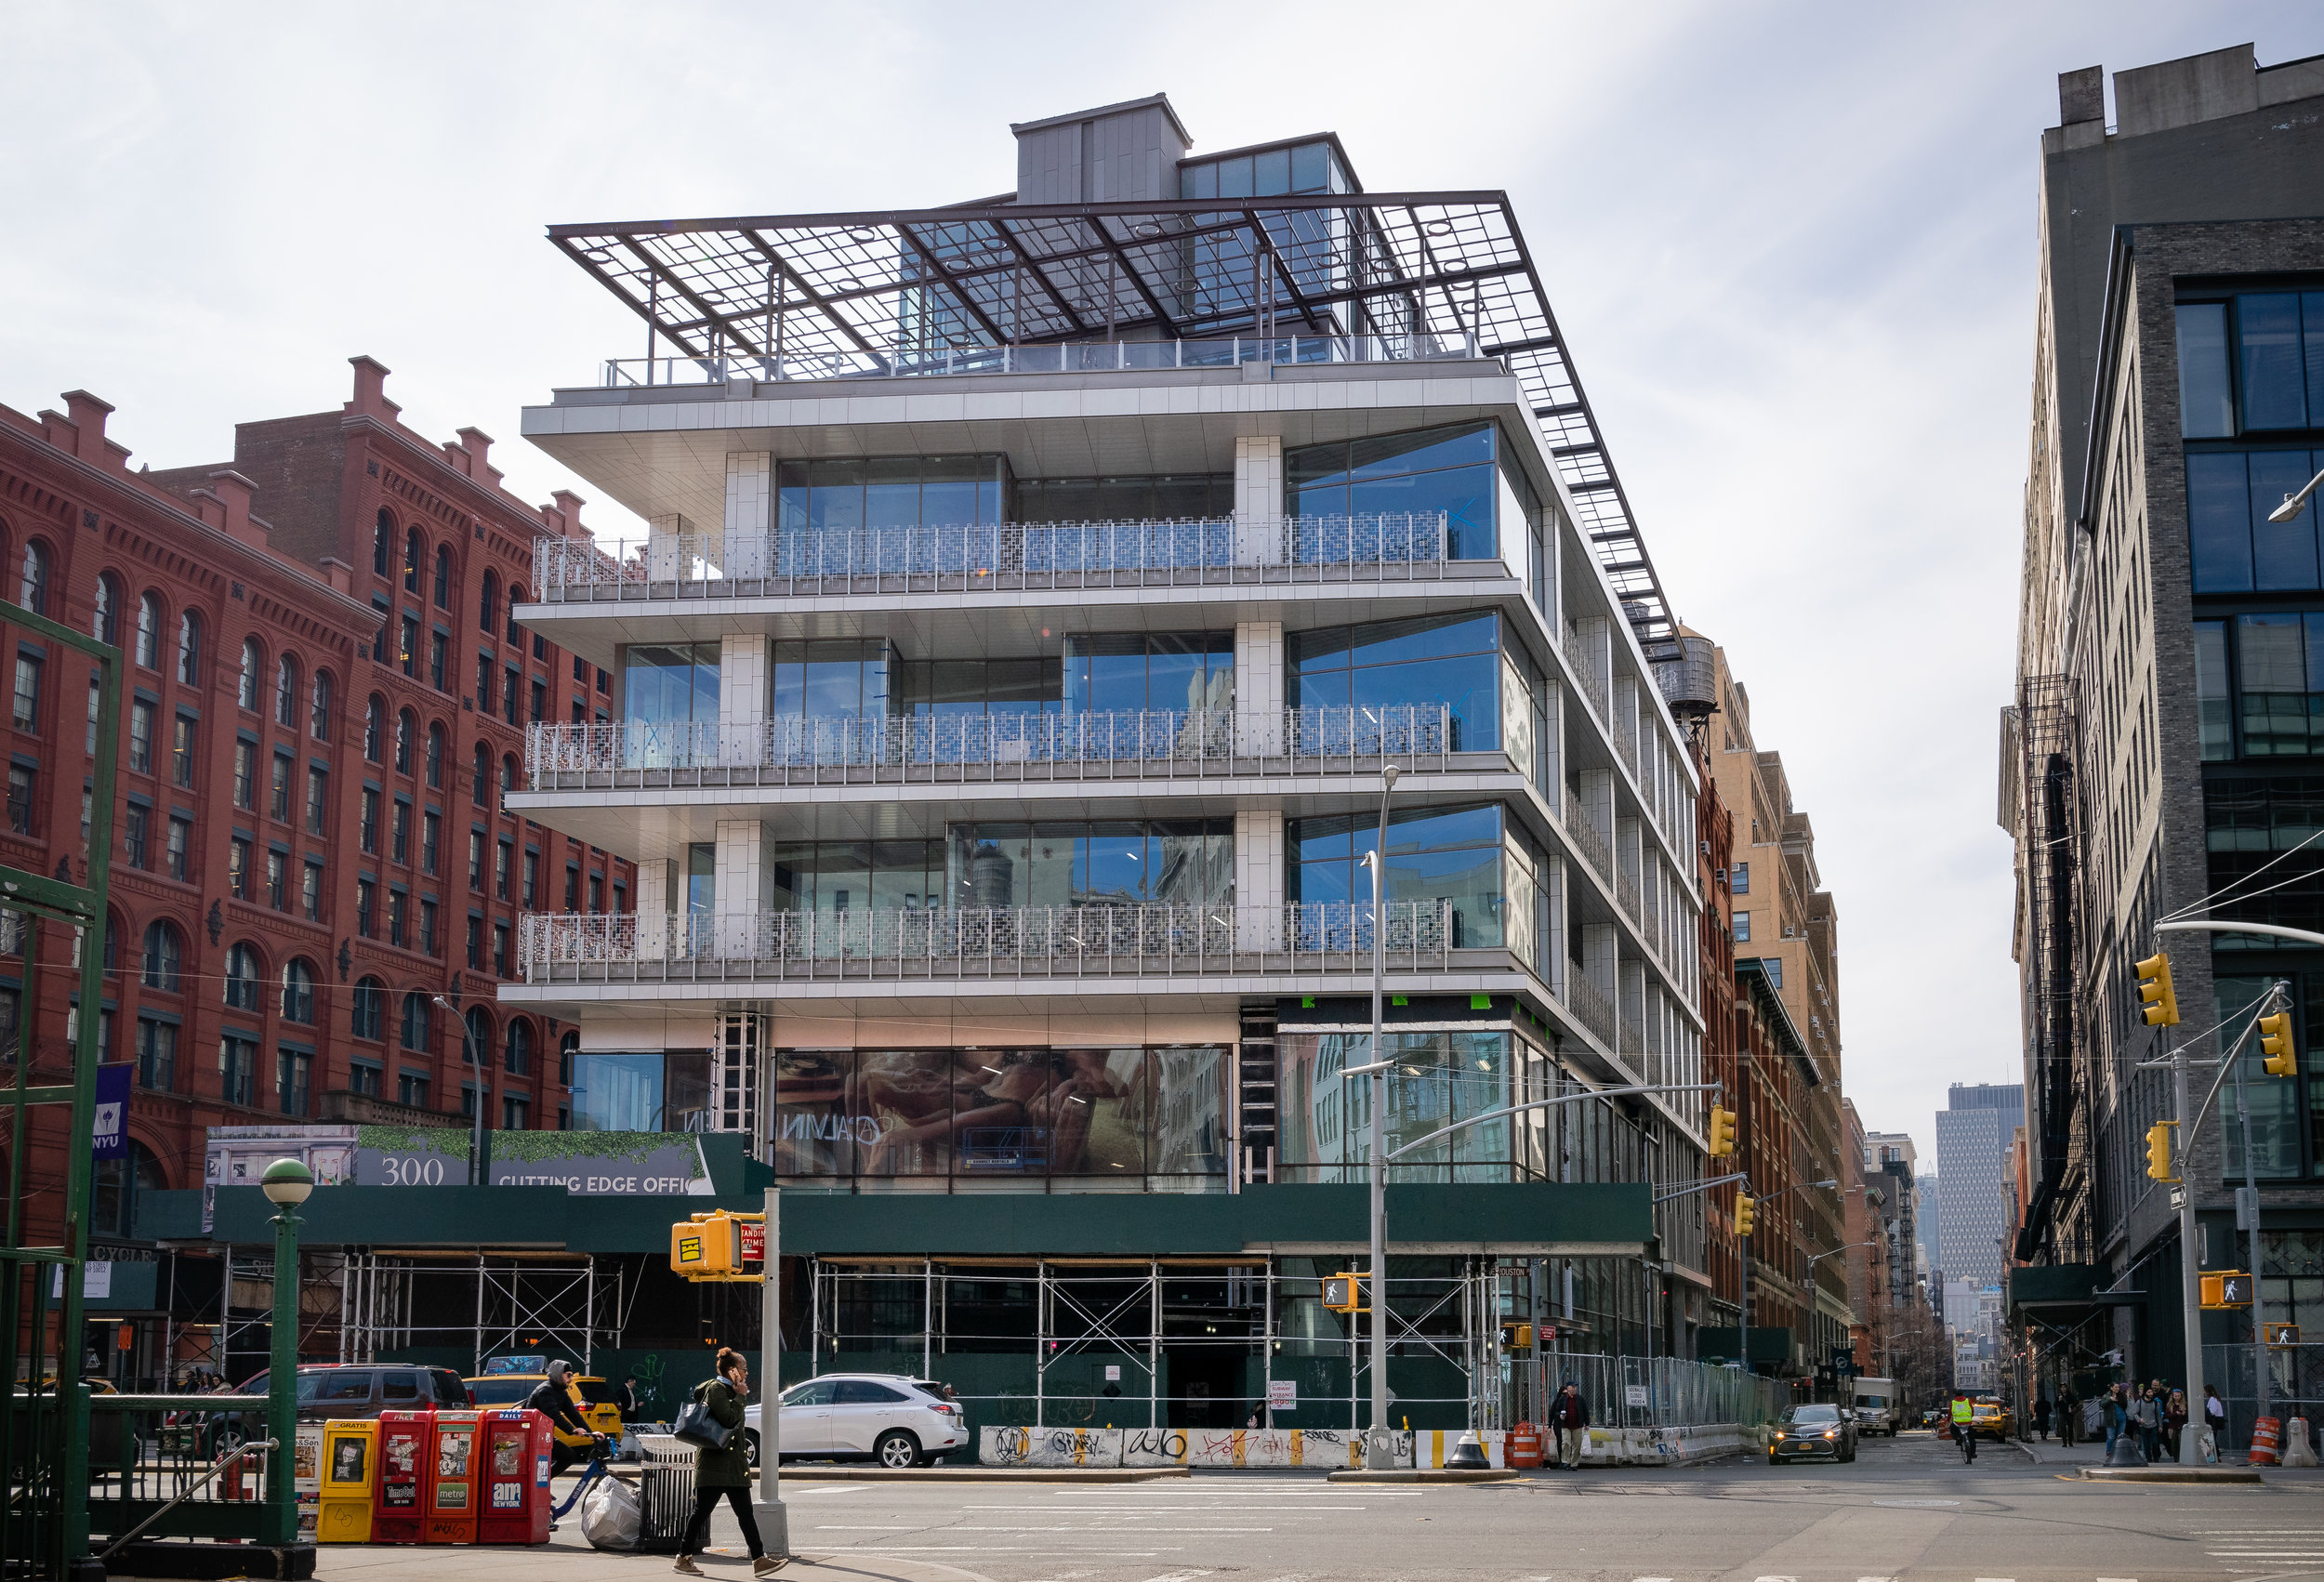 300 Lafayette St Soho Manhattan Project Update Built by March Associates Construction Photos by Briana Joelle Samman